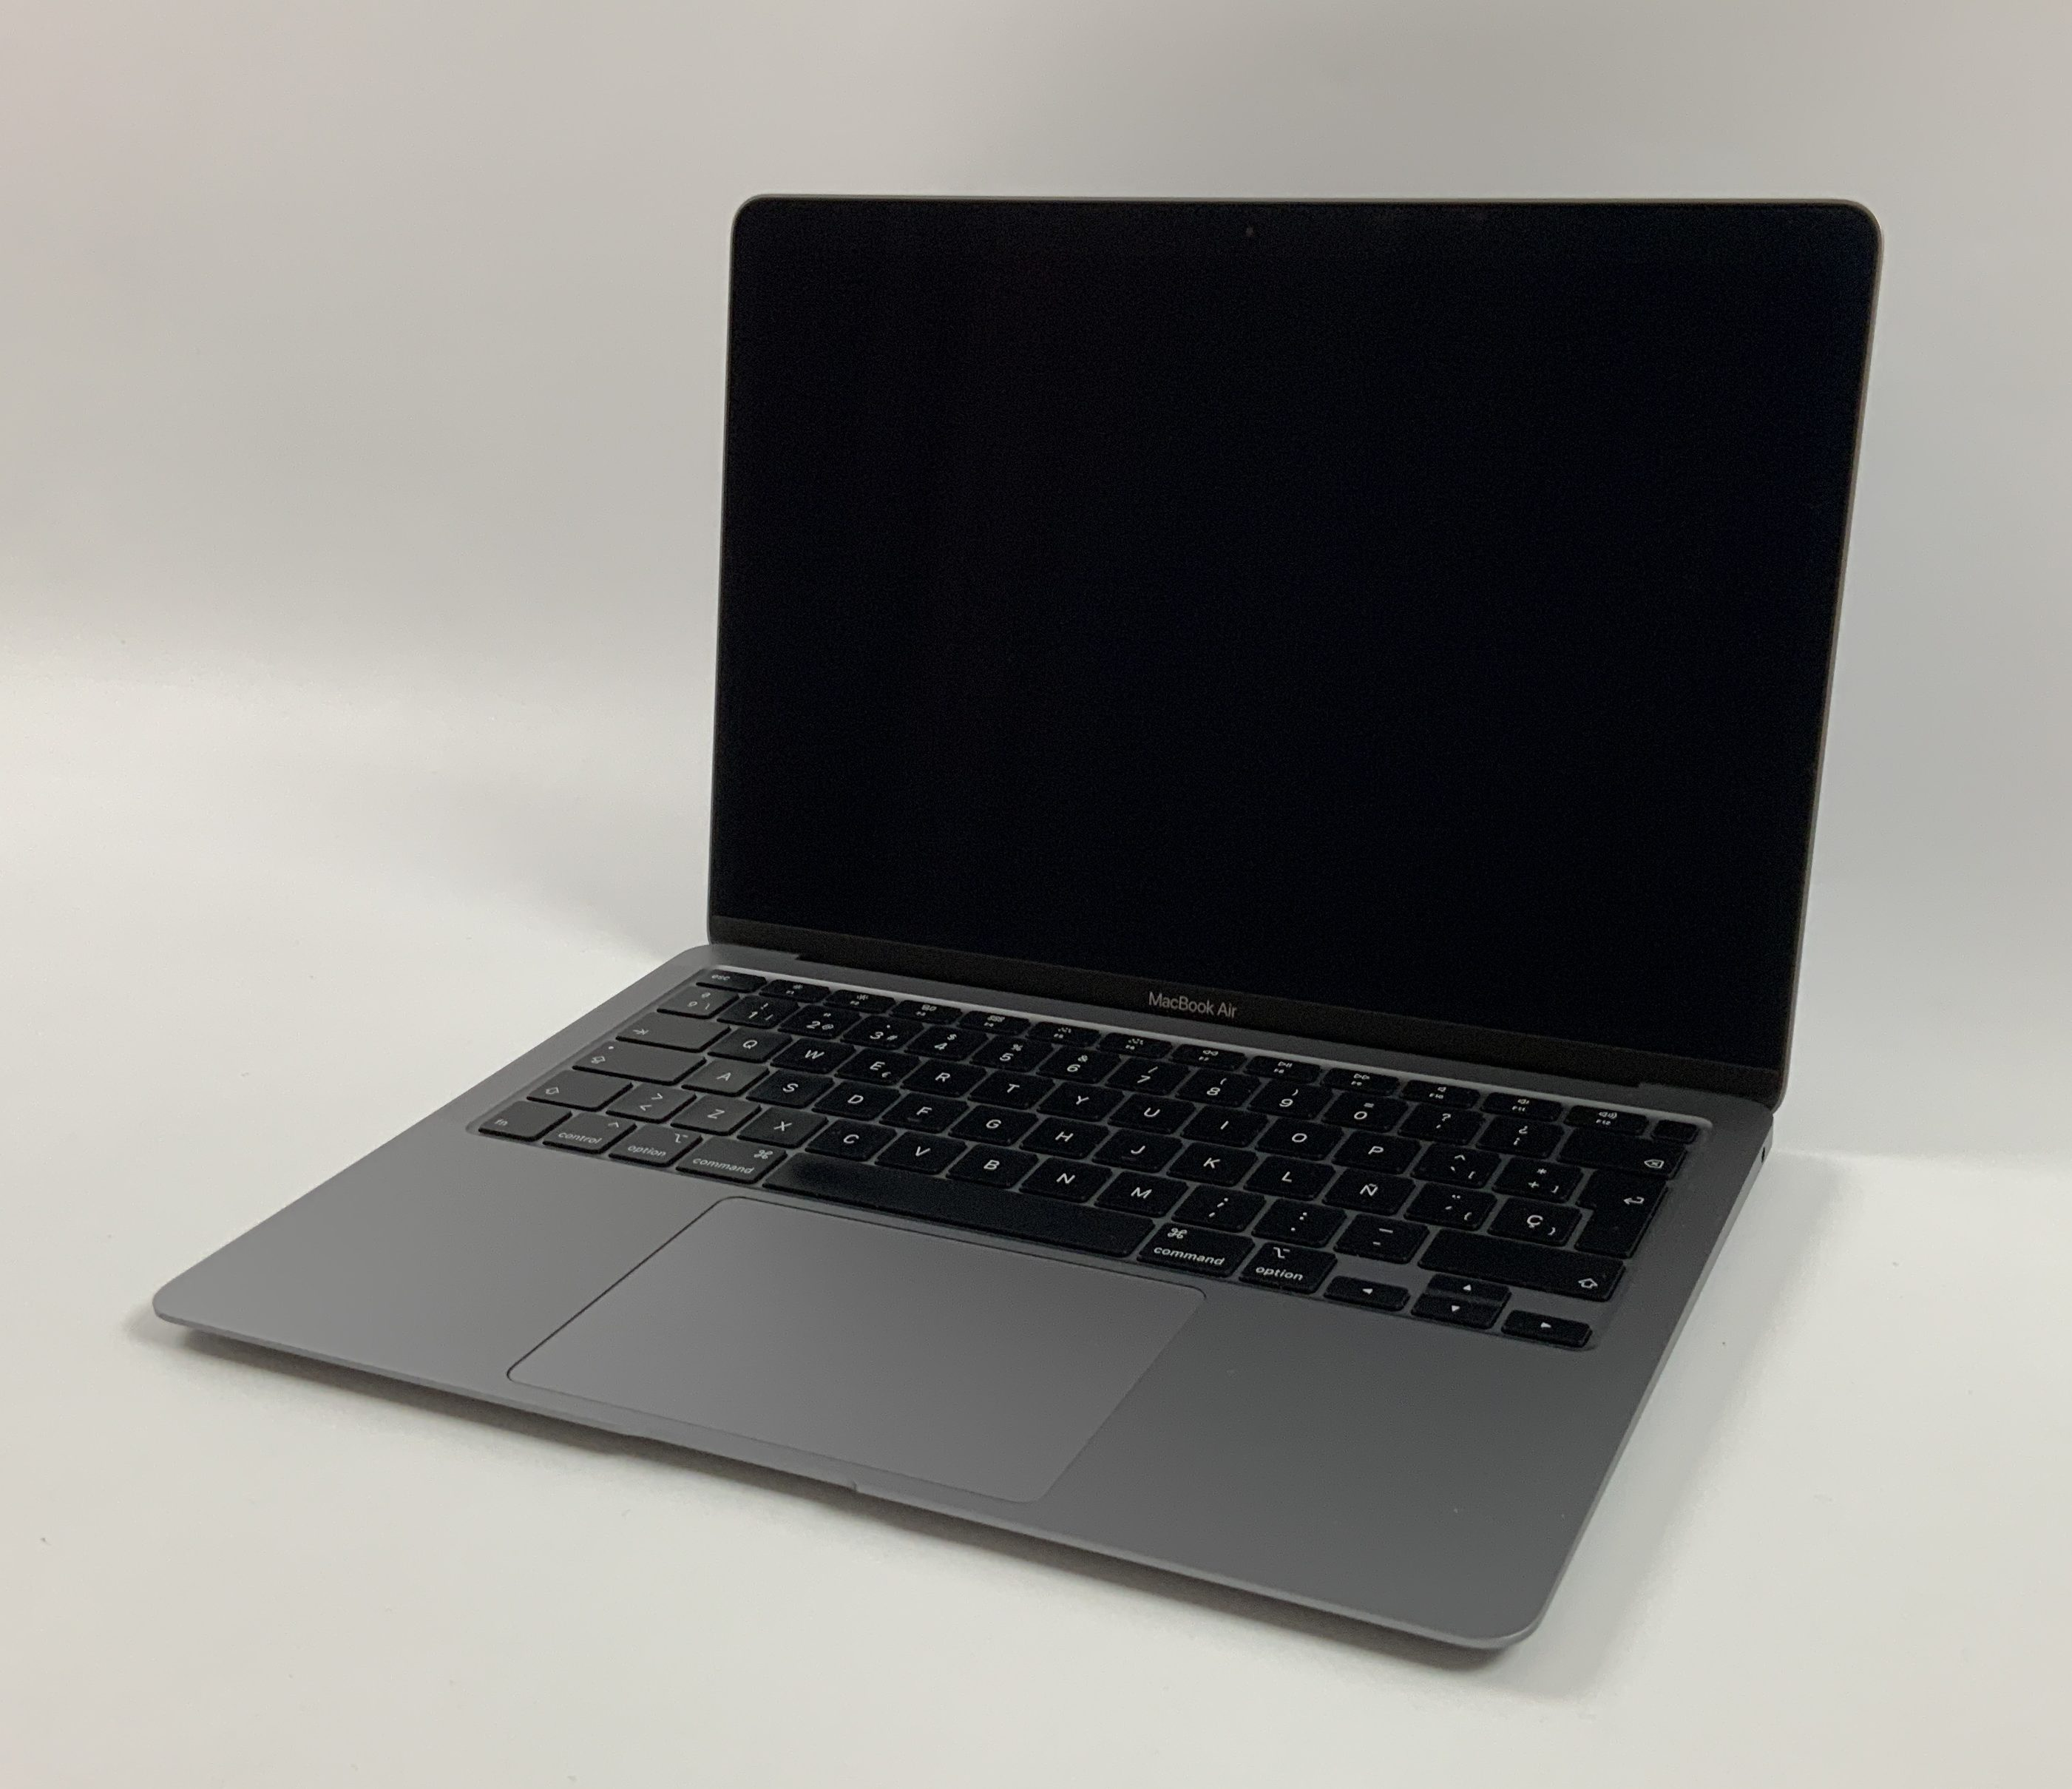 "MacBook Air 13"" Early 2020 (Intel Quad-Core i5 1.1 GHz 16 GB RAM 256 GB SSD), Space Gray, Intel Quad-Core i5 1.1 GHz, 16 GB RAM, 256 GB SSD, imagen 1"